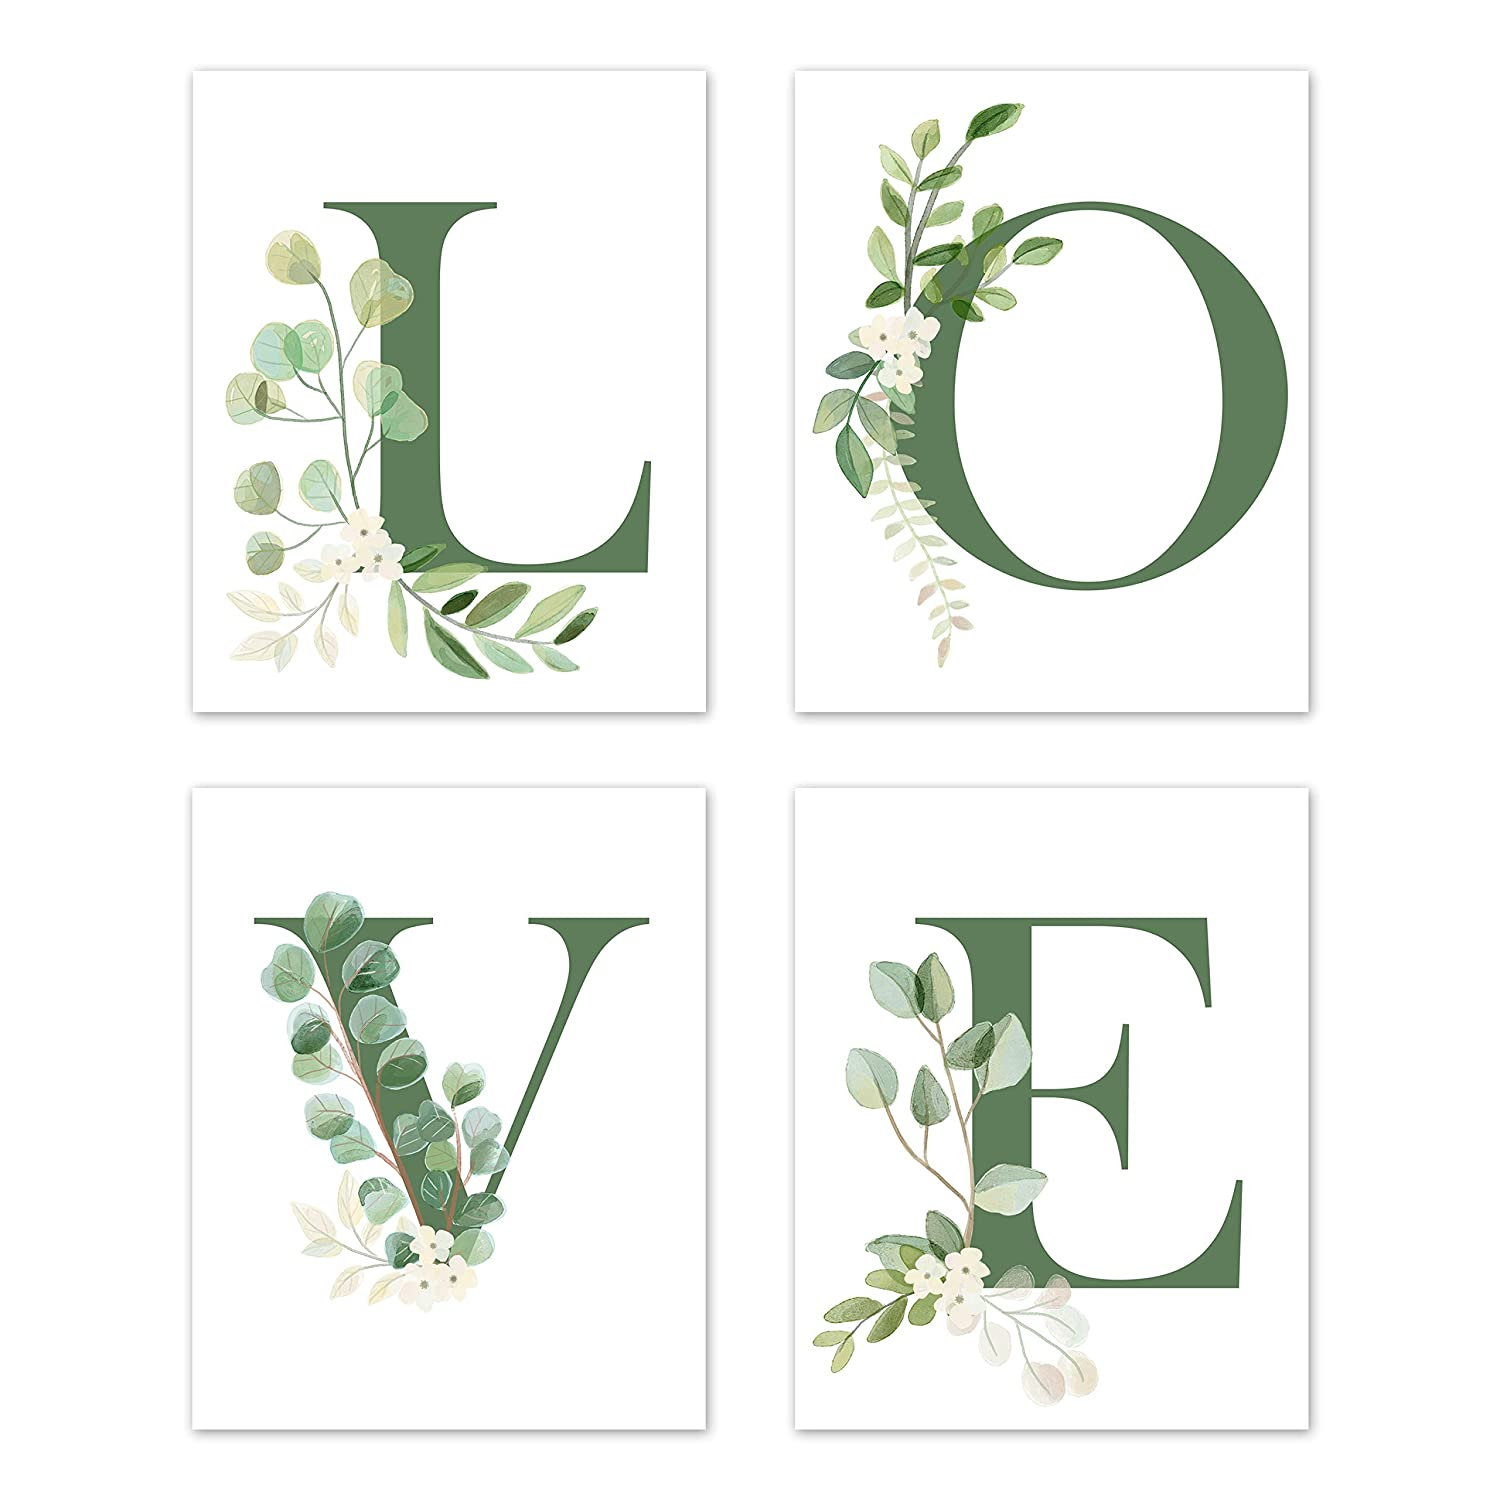 Sweet Jojo Designs Floral Leaf Wall Art Prints Room Decor for Baby, Nursery, and Kids - Set of 4 - Green and White Boho Watercolor Floral Leaf Botanical Woodland Tropical Garden